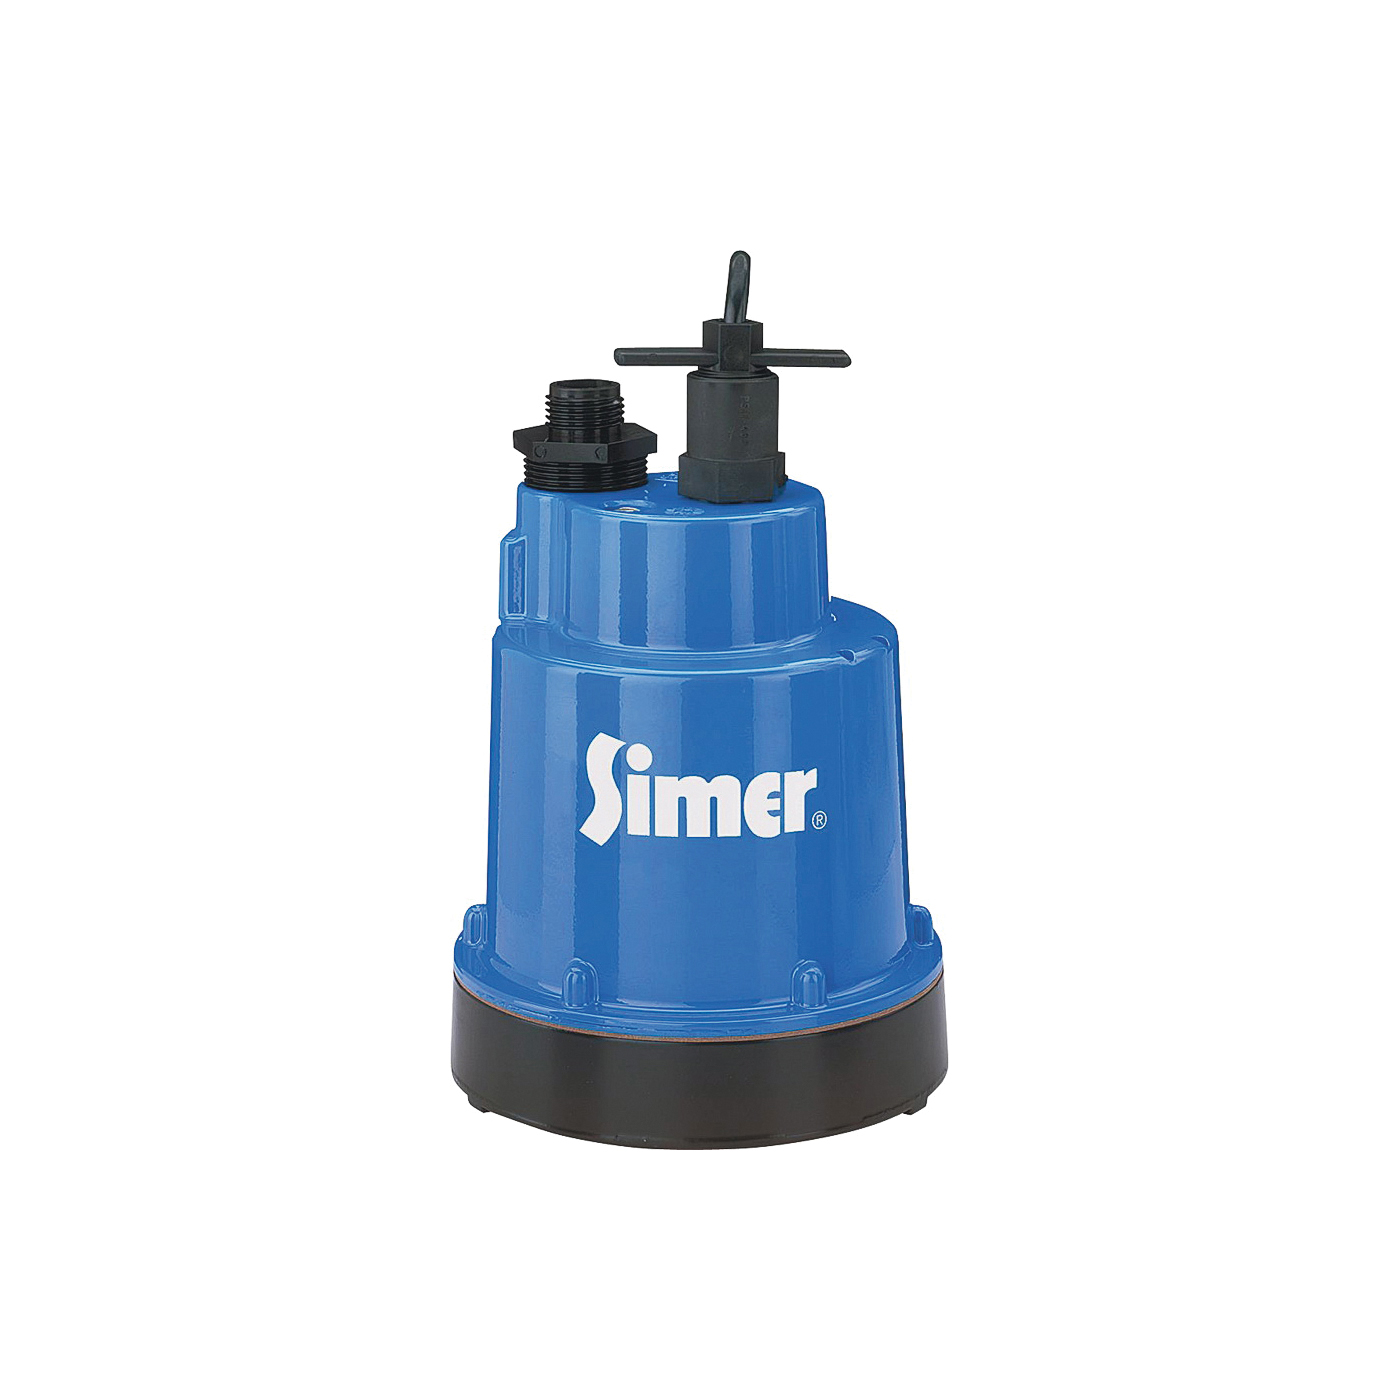 Picture of Sta-Rite Simer Geyser 2300 Utility Pump, 1-Phase, 5.6 A, 115 V, 0.25 hp, 1-1/4 in Outlet, 1320 gph, Aluminum